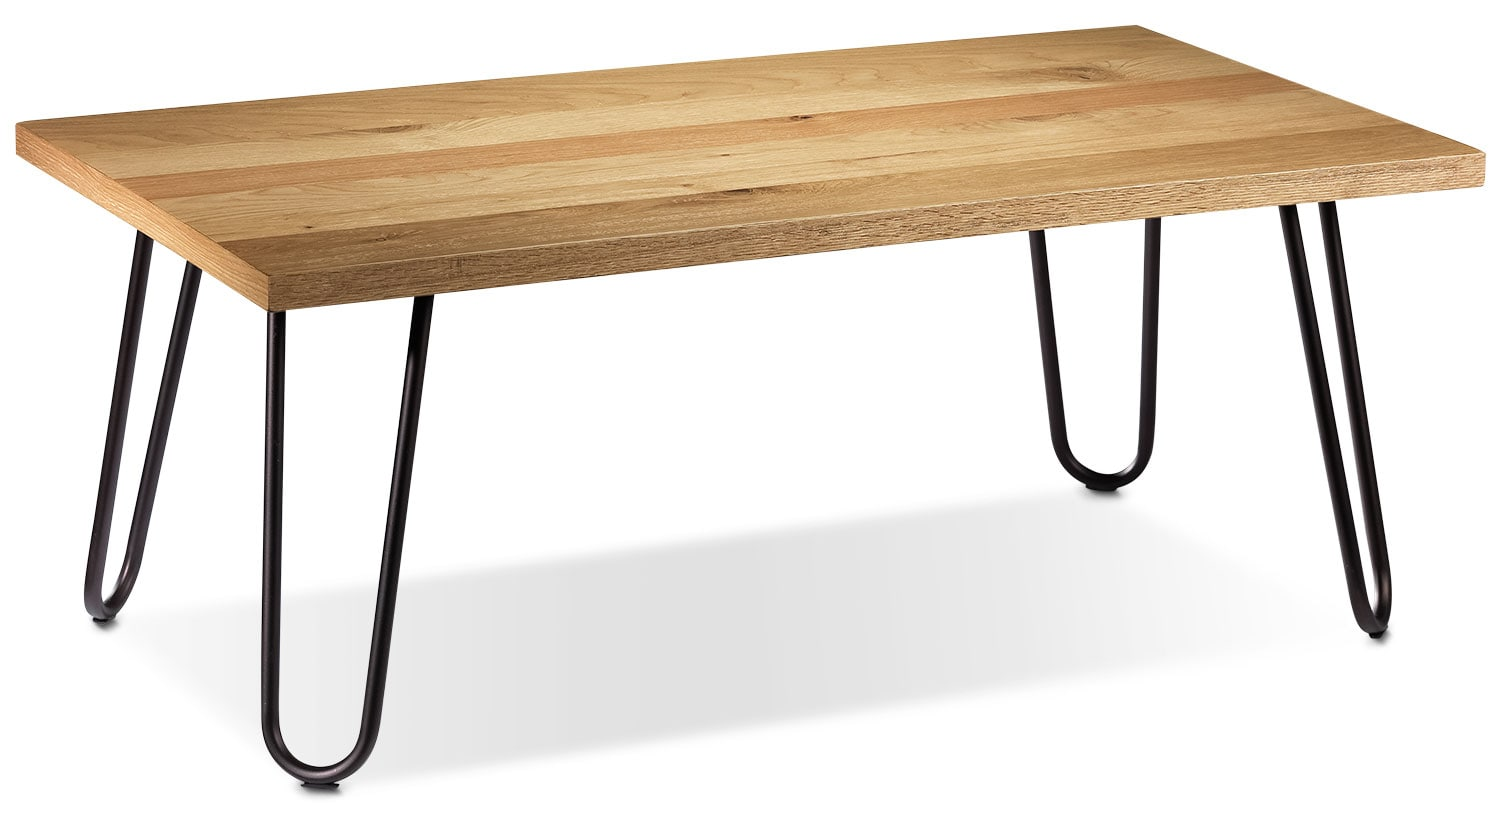 Accent and Occasional Furniture - Dijon Coffee Table - Light Oak